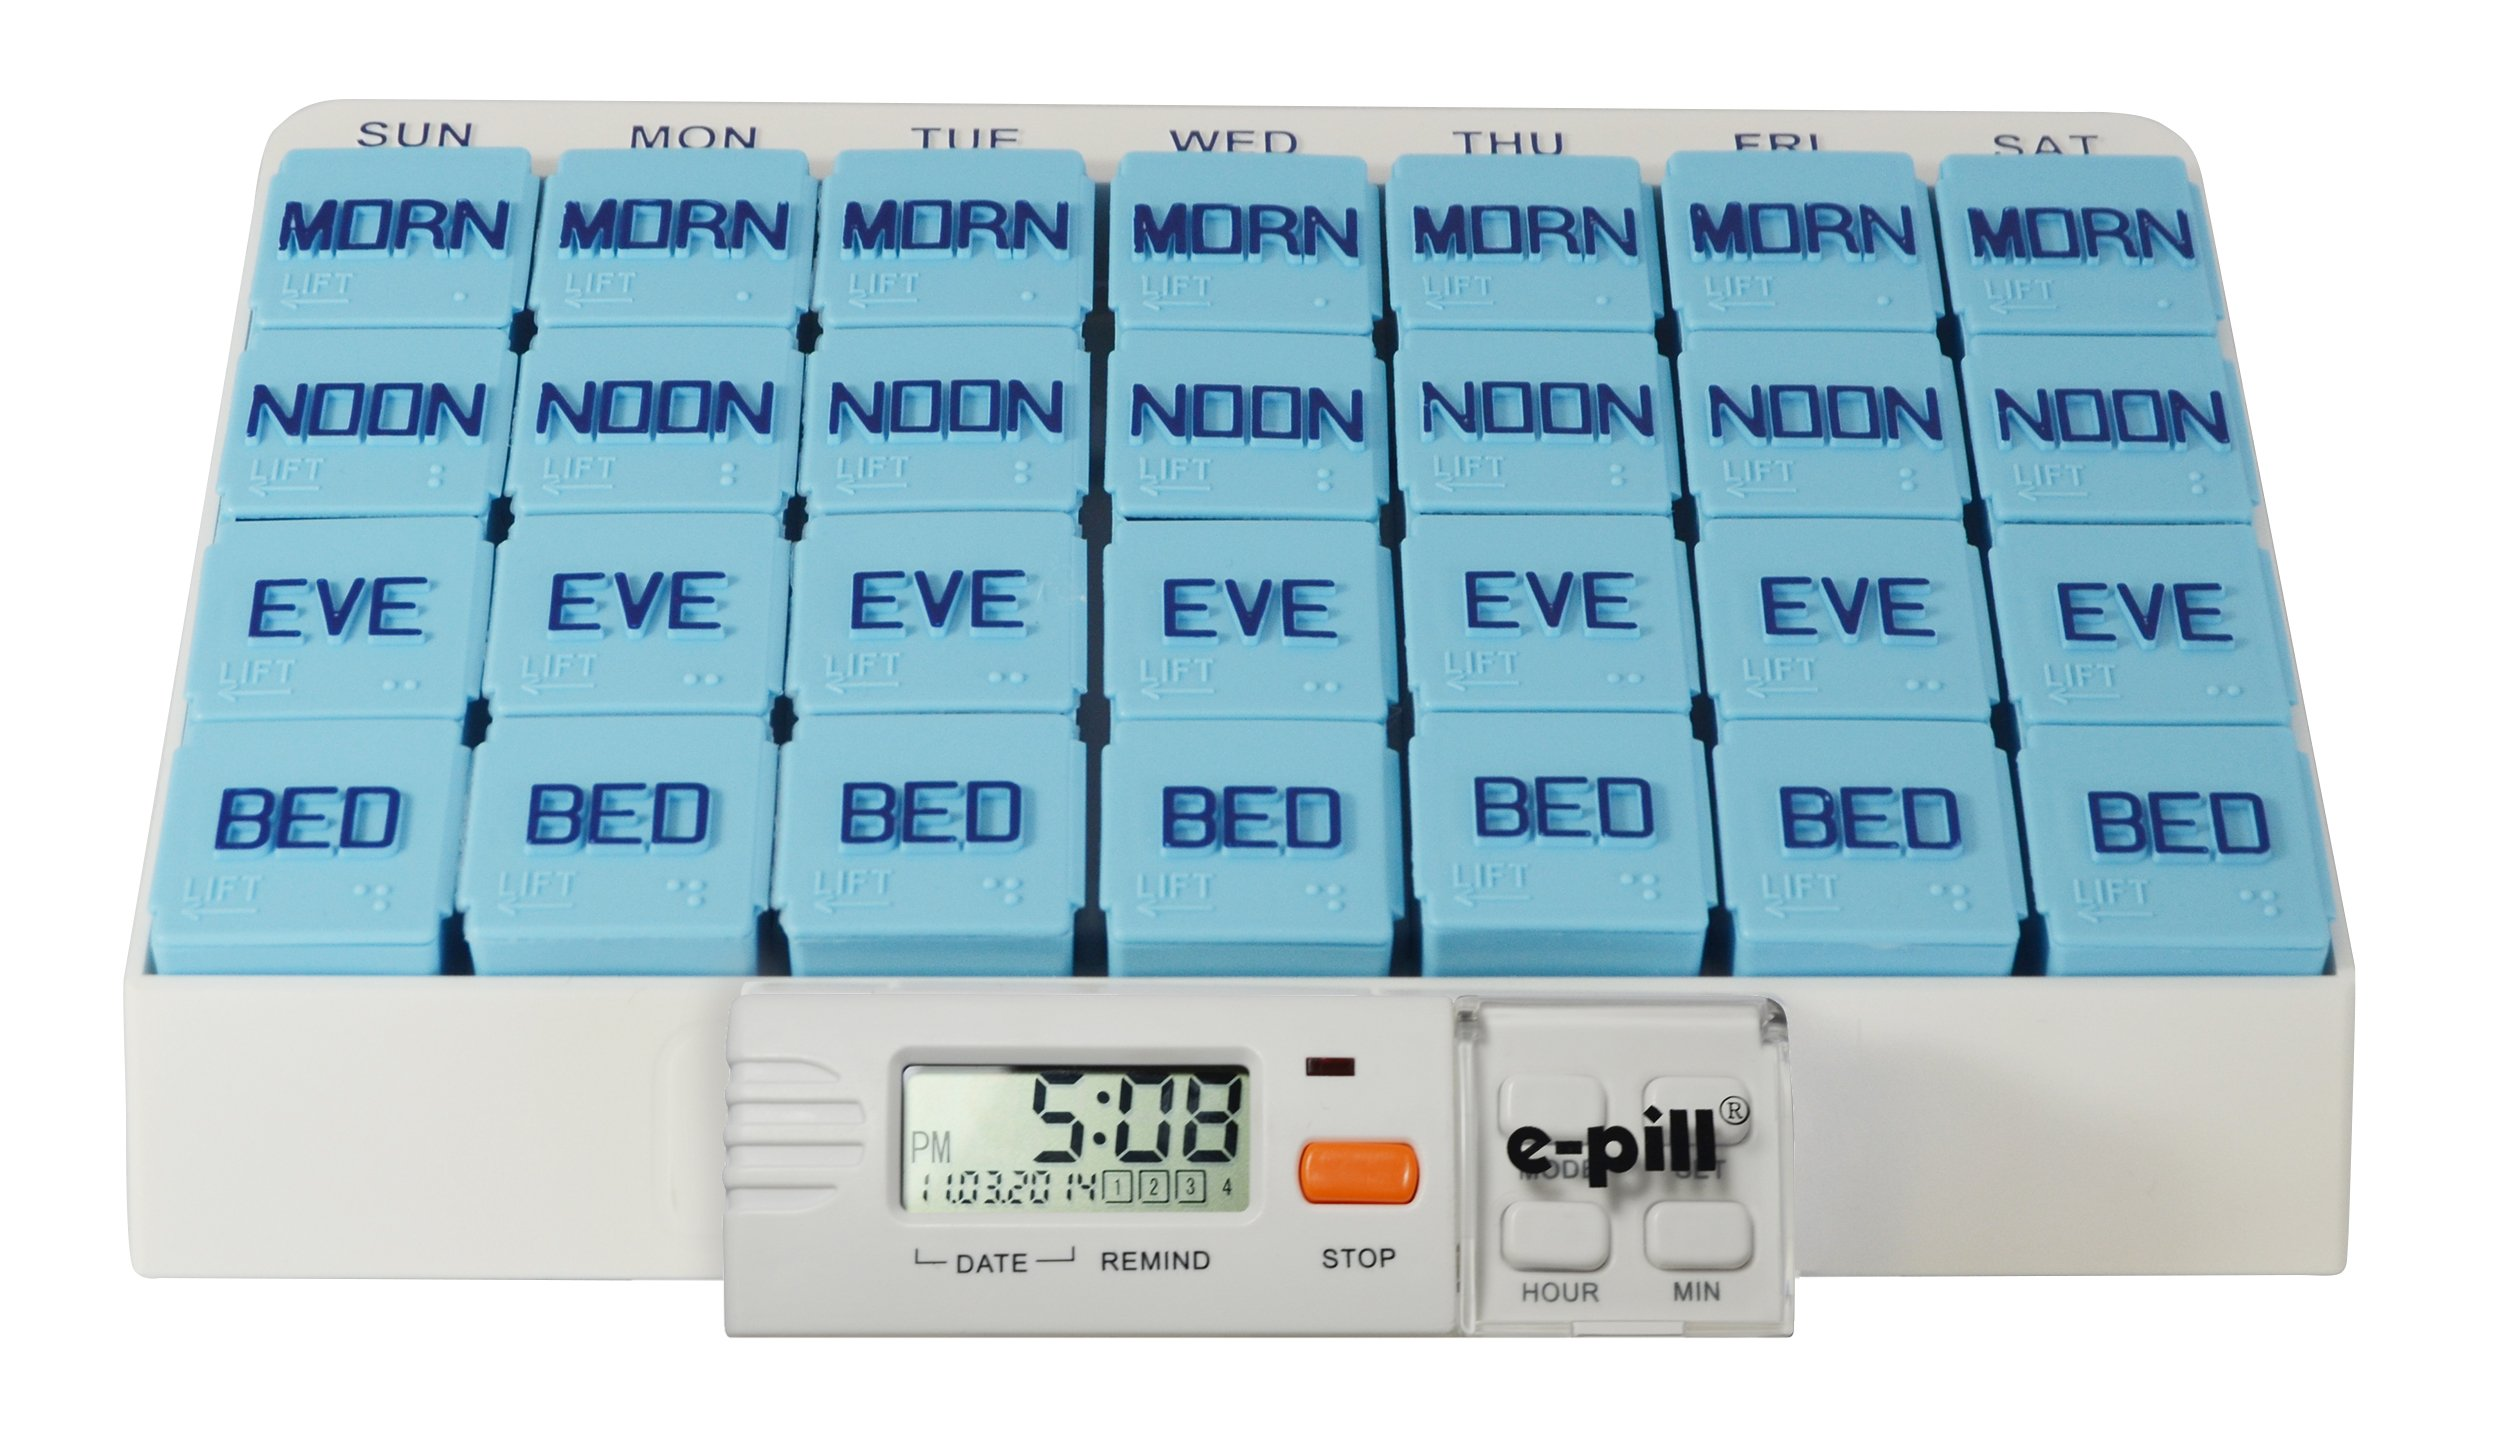 MedGlider 7 Day x 4 Large Capacity Pill Box with Med Timer. e-pill Weekly Pill Box Organizer Center for Medications, Supplements, and Vitamins. e-pill 4 Alarm Timer included. by e-pill Medication Reminders